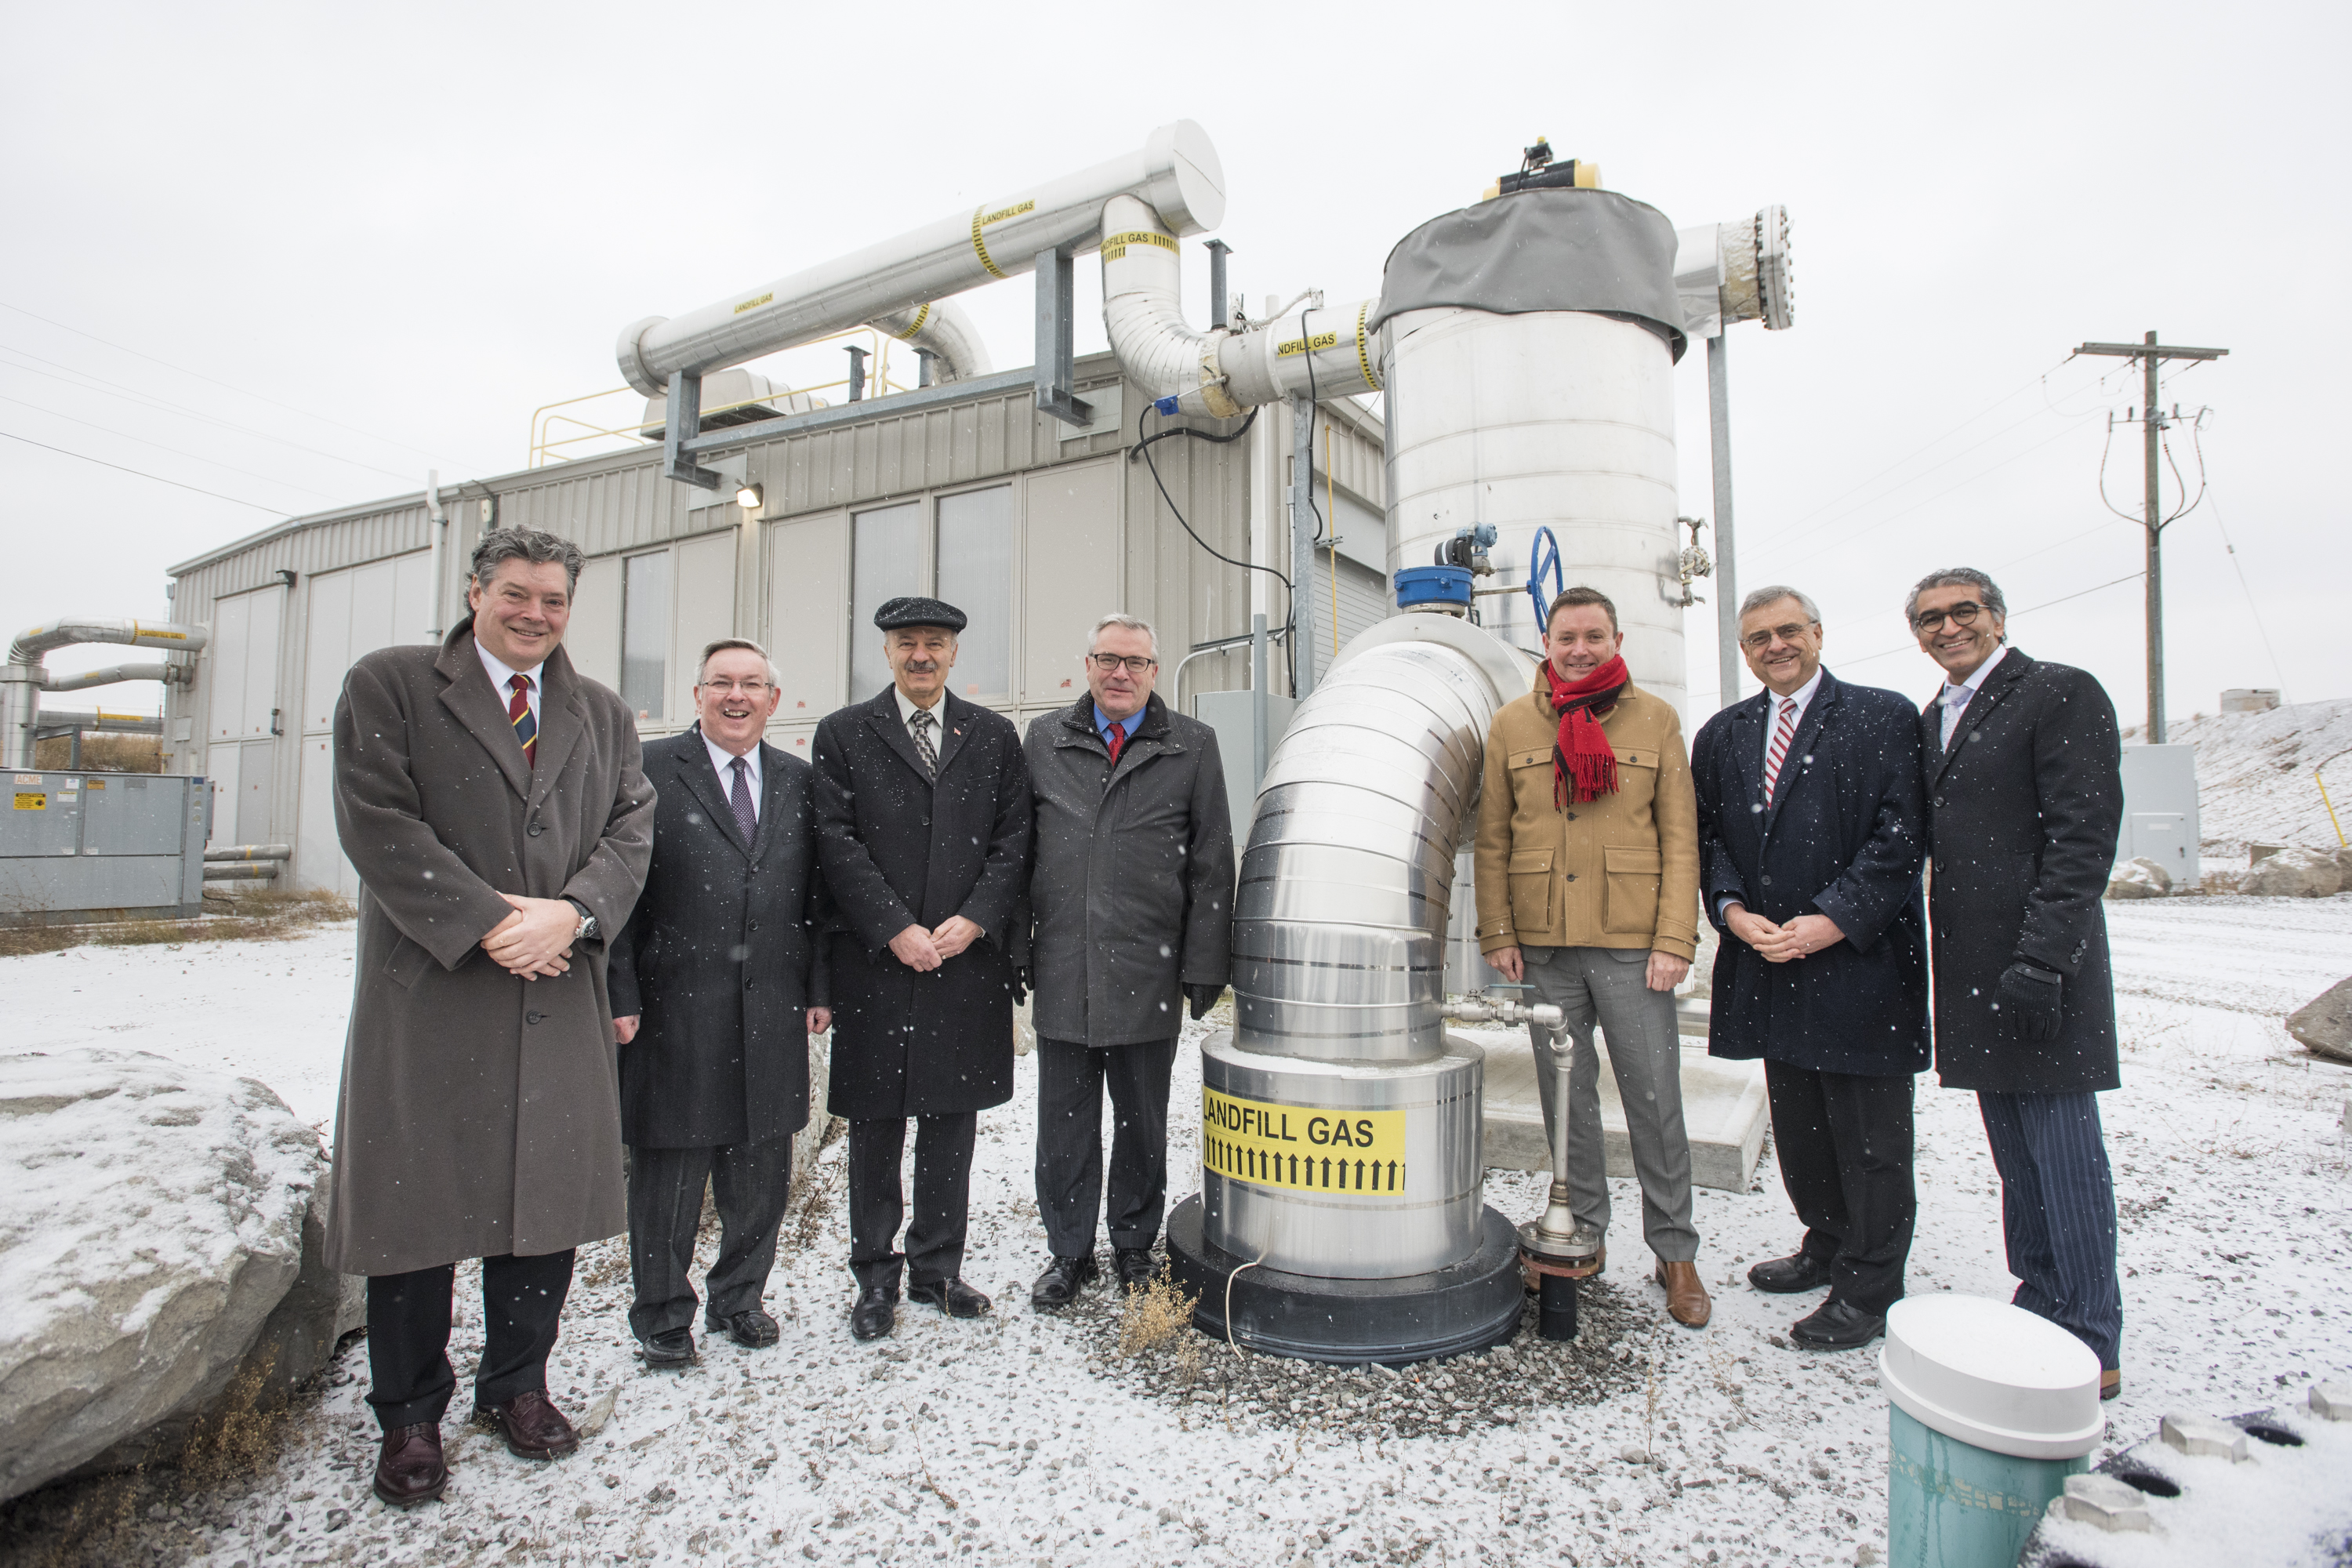 At the Walker (IGRS) landfill gas plant on December 8, 2017. L-R: David Paterson, Vice President of Corporate and Environmental Affairs, General Motors; Jim Bradley, MPP St. Catharines; Dr. Reza Moridi, Minister of Research, Innovation and Science; Chris Ballard, Minister of the Environment and Climate Change; Mike Watt, Executive Vice President, Walker Environmental; Dr. Tom Corr, President and CEO, Ontario Centres of Excellence; Parminder Sandhu, Green Ontario Fund Board Chair.